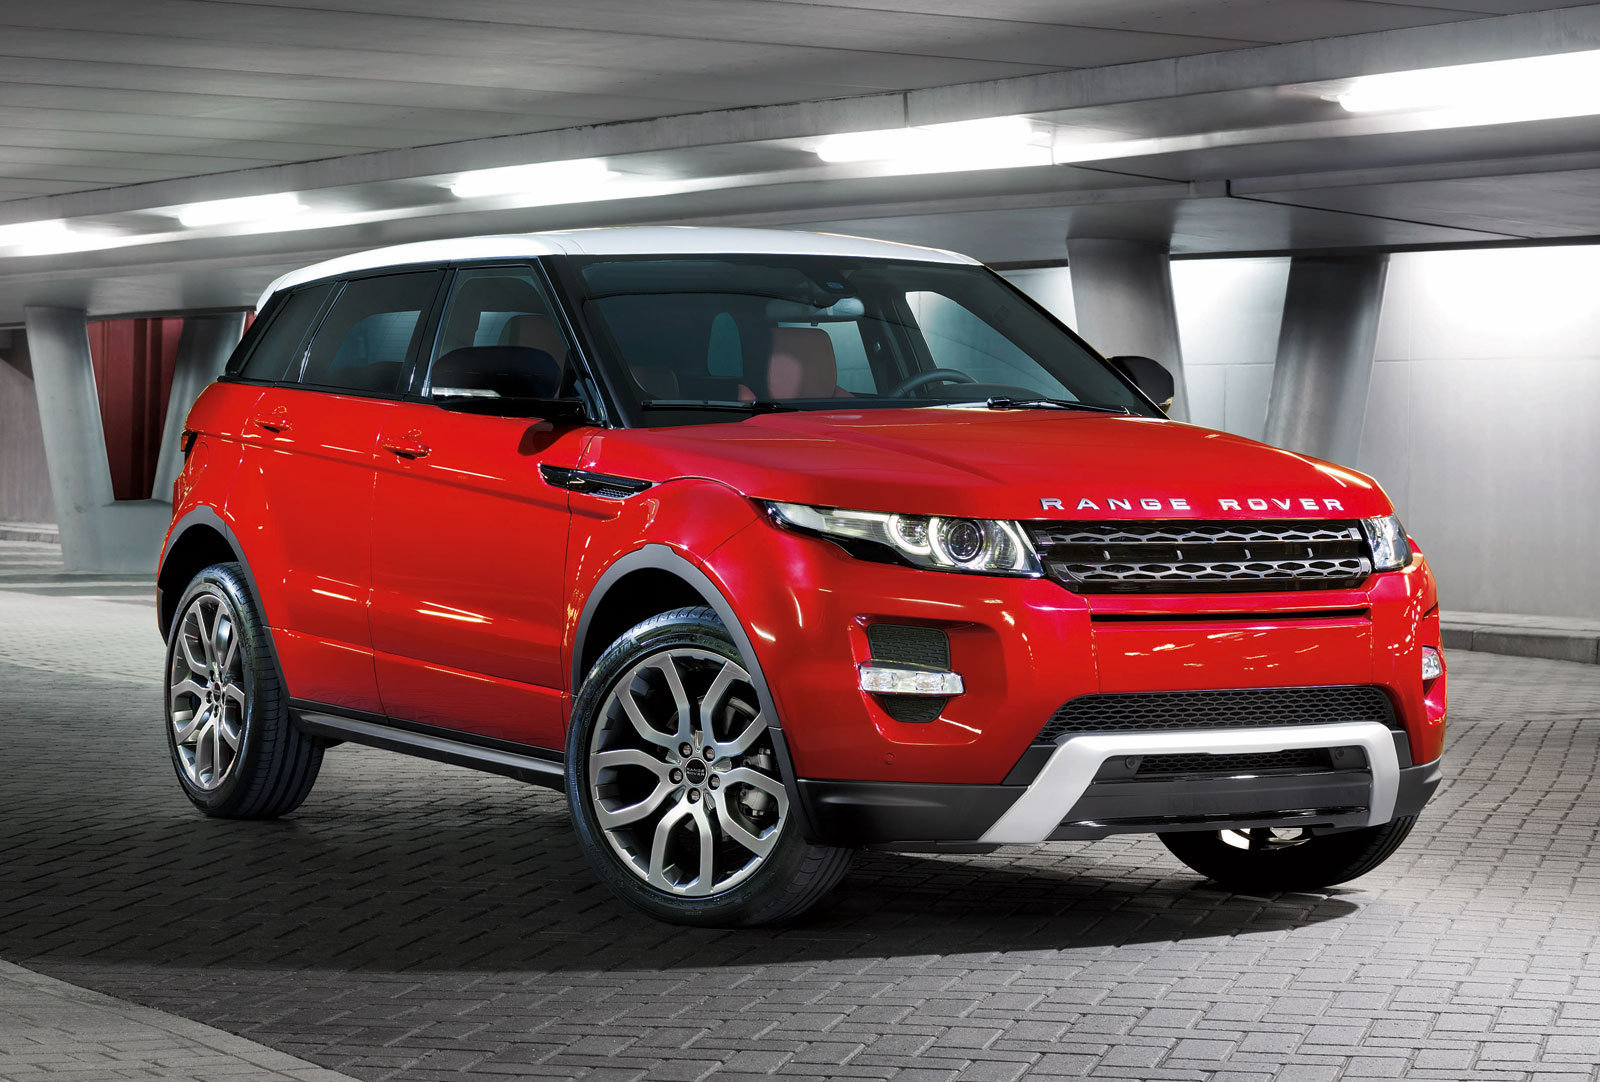 land rover plans a hot version of the evoque picture. Black Bedroom Furniture Sets. Home Design Ideas